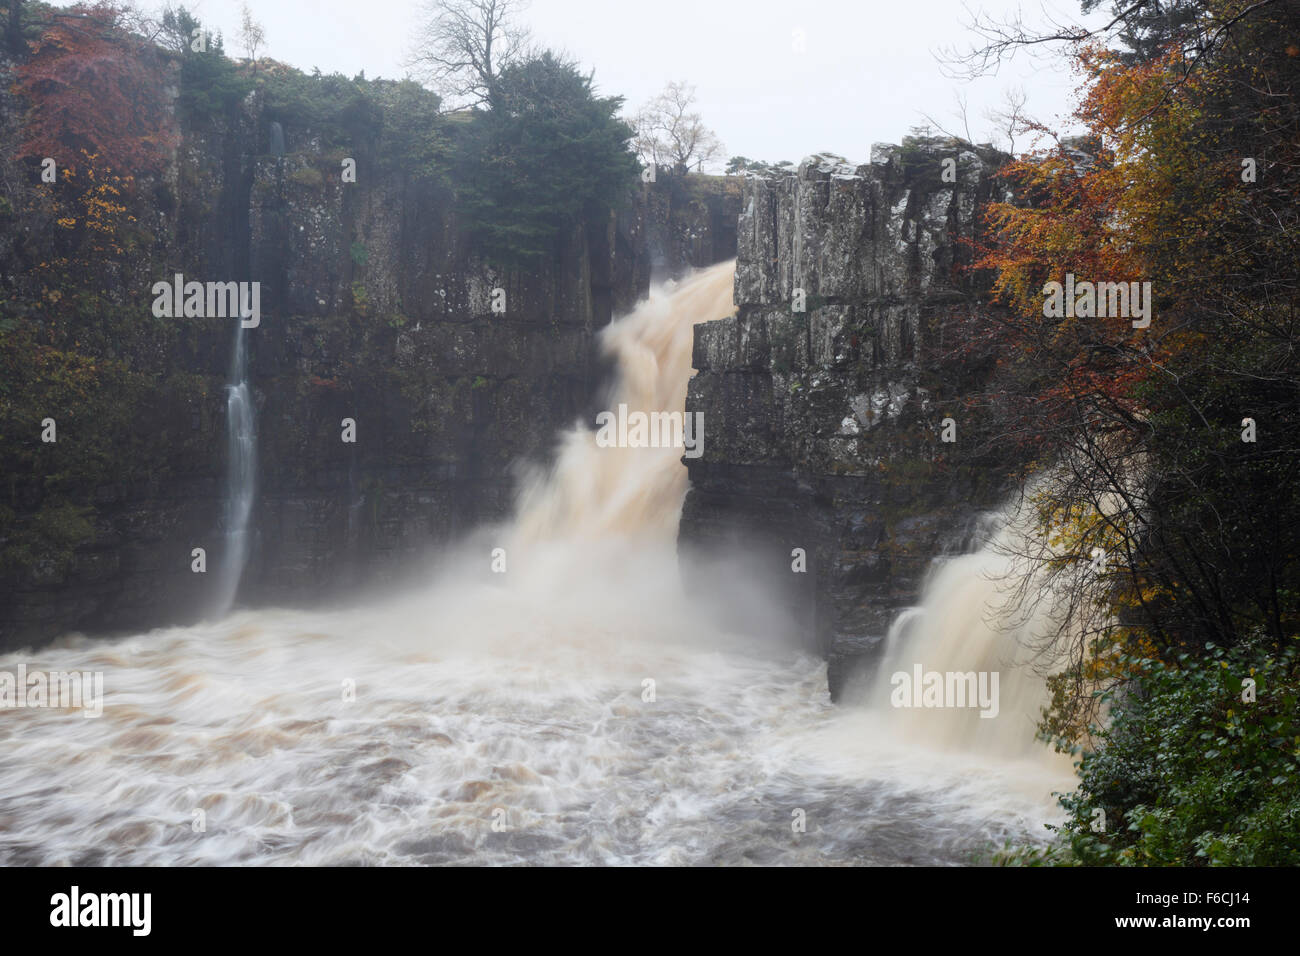 High Force in full flow during heavy rainfall on the River Tees. Teesdale. County Durham. UK. - Stock Image